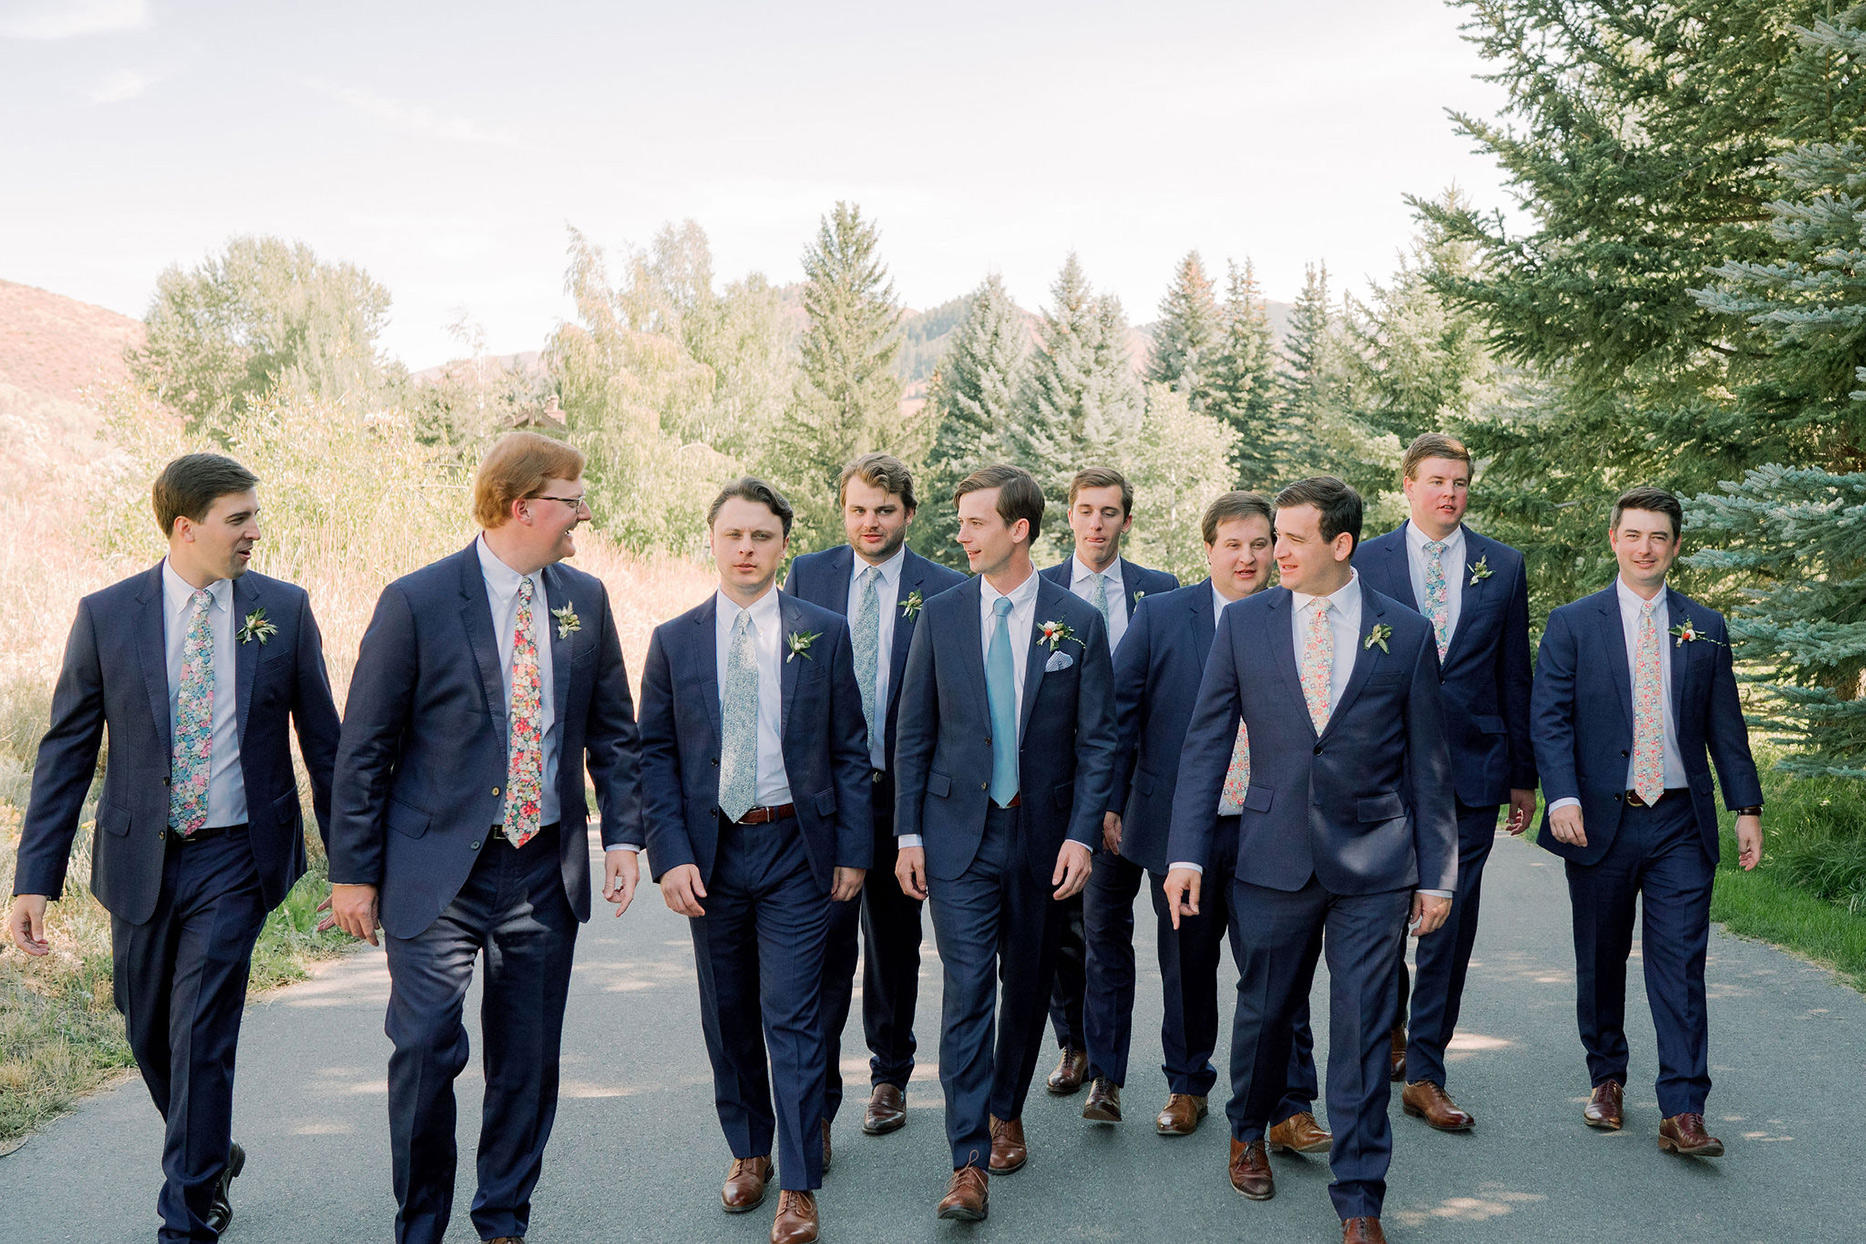 groomsmen walking down road with floral patterned ties and blue suits